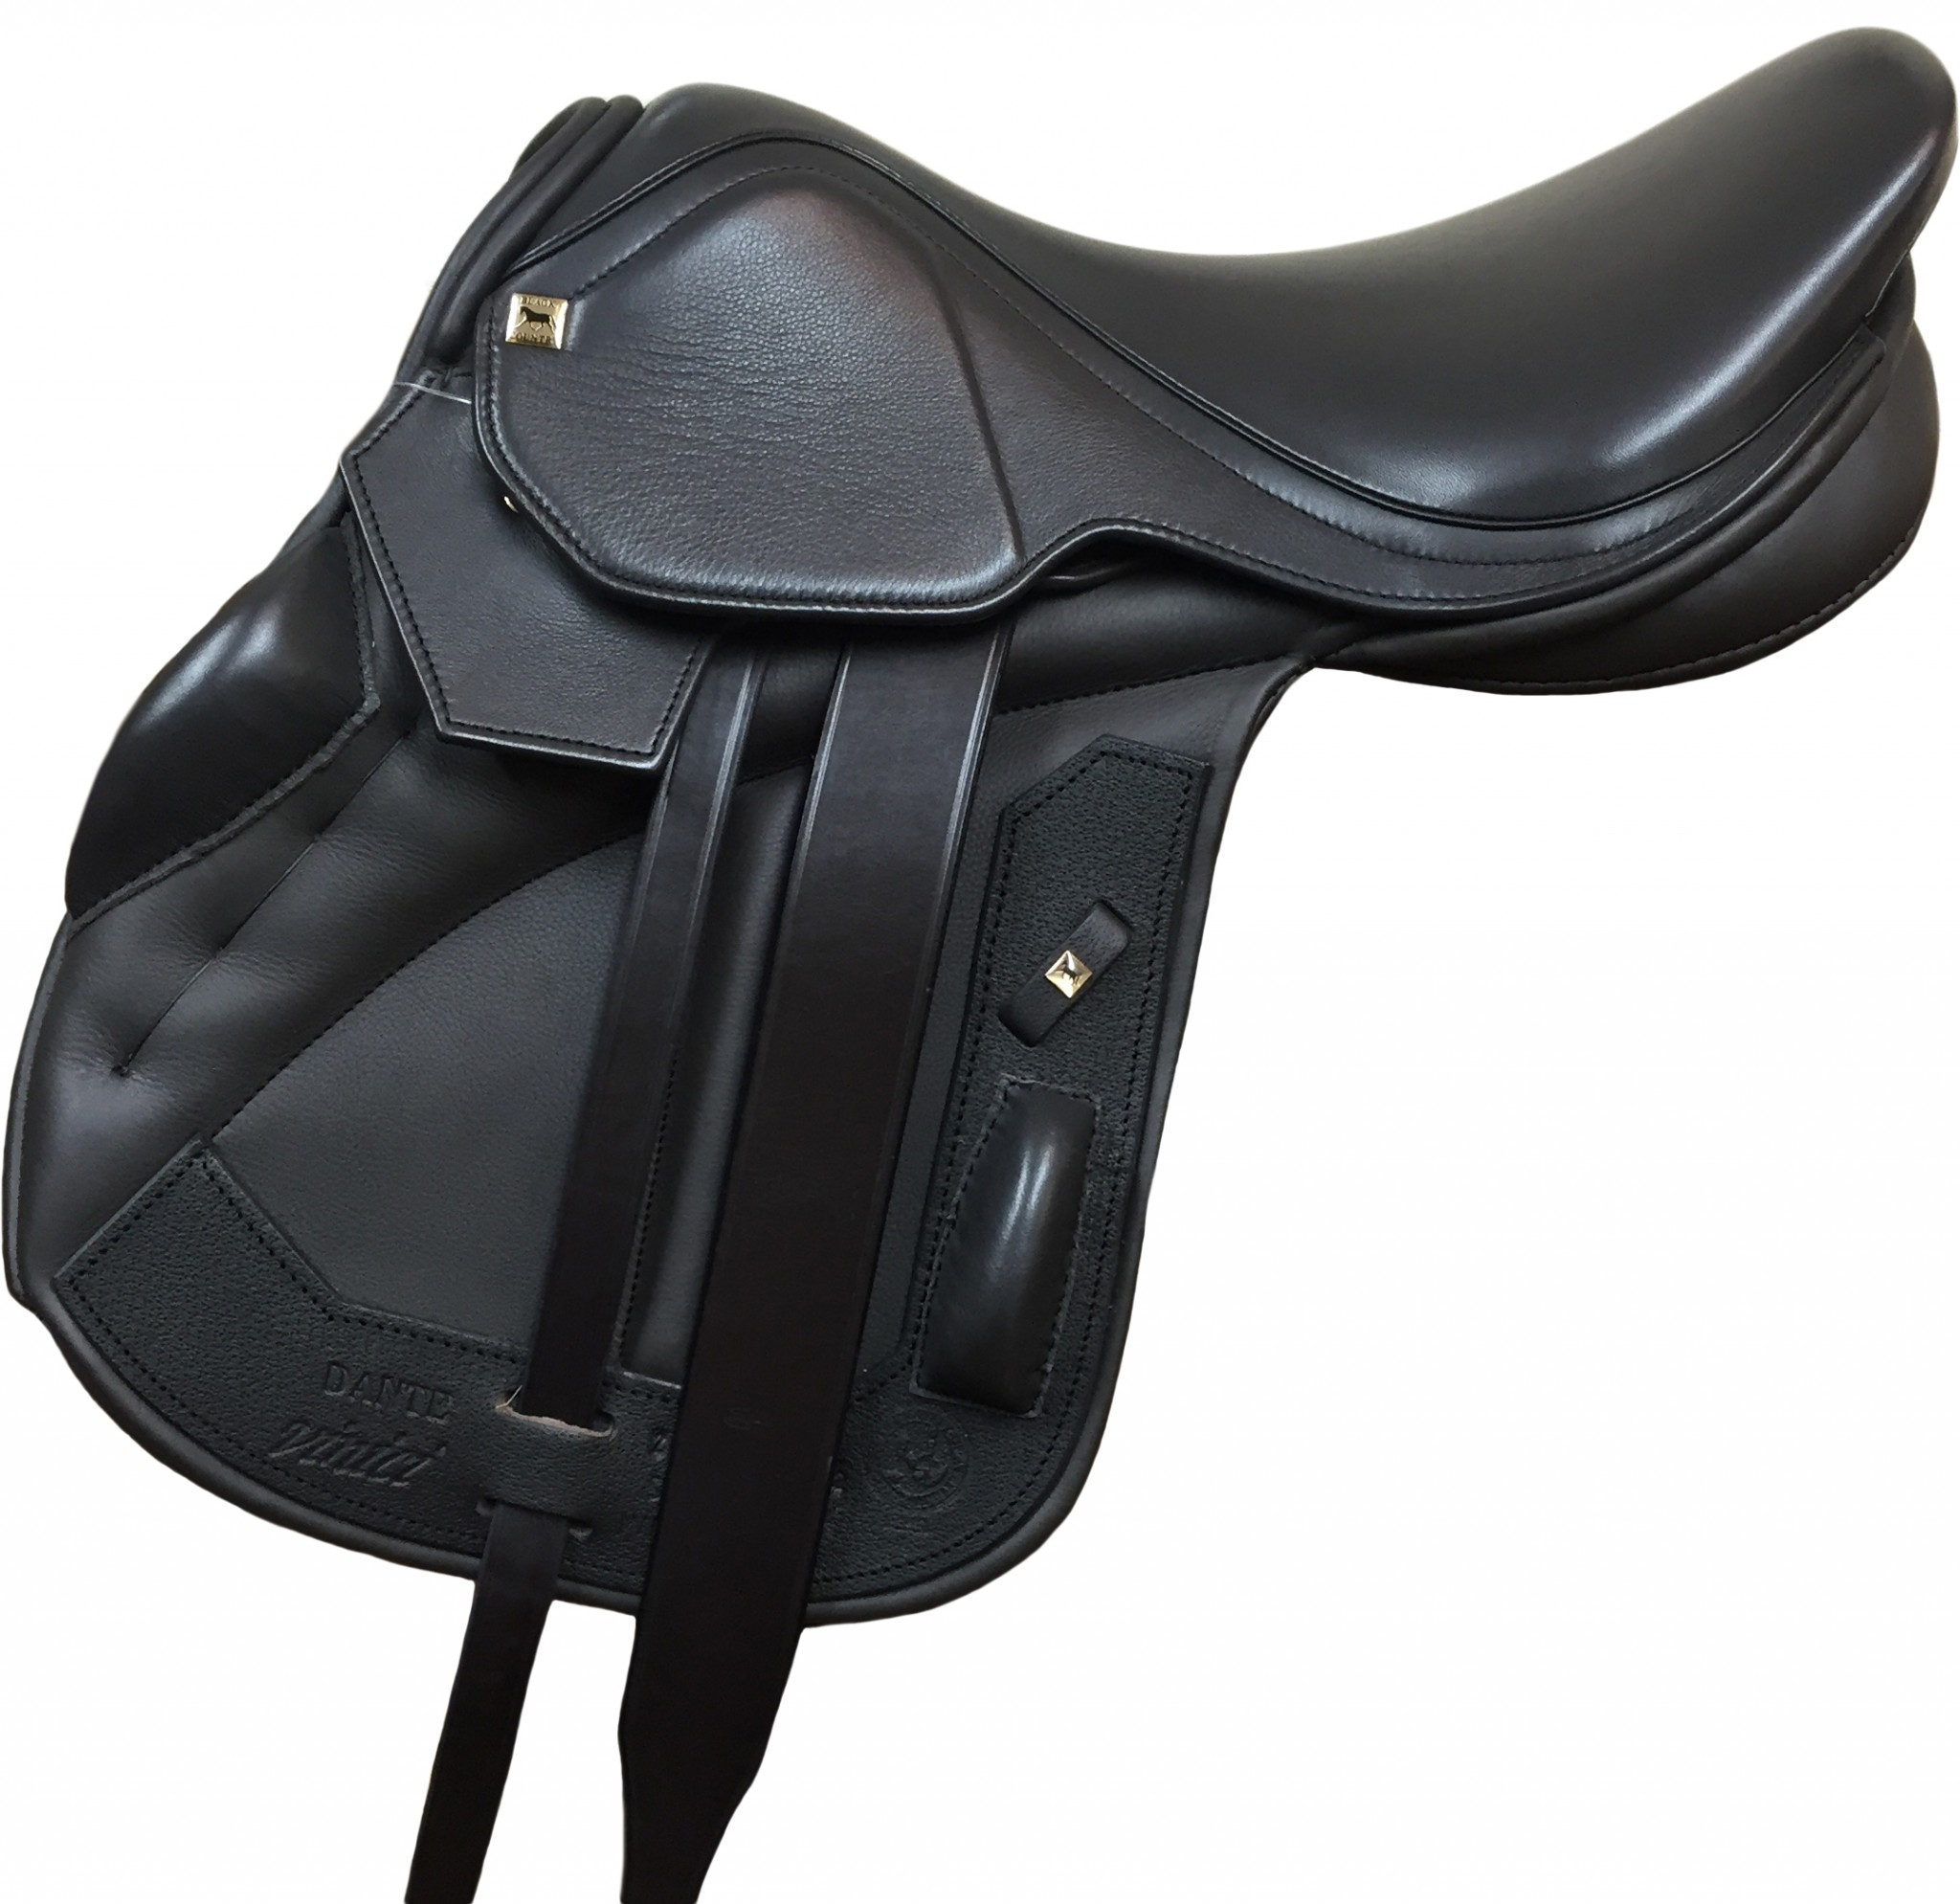 Dante Vinici Jump - New Dante Vinici Jump from Black Country Saddles